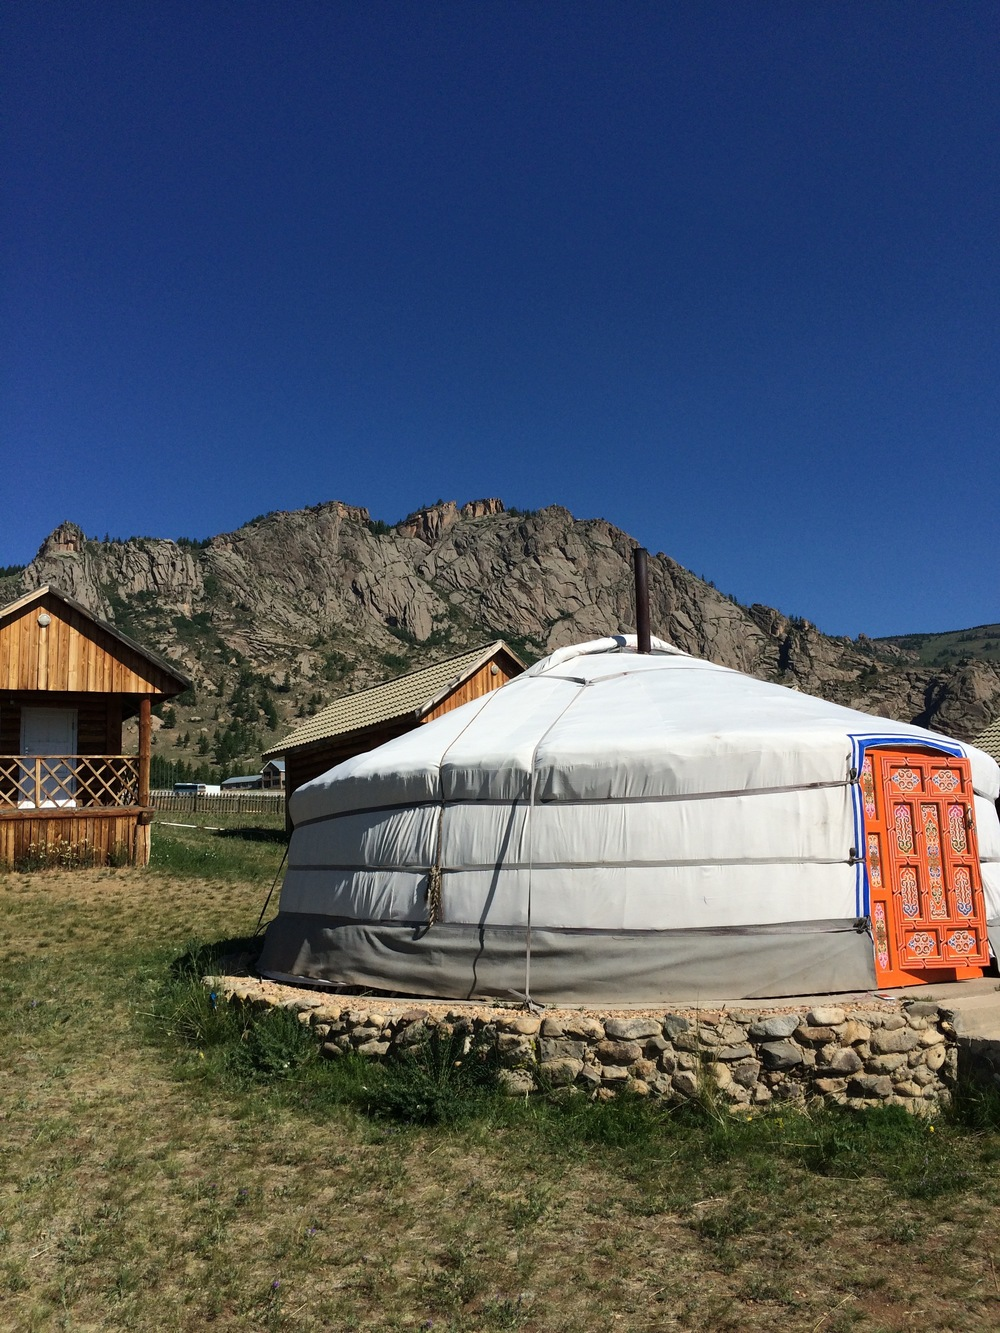 Yurts - our lodging at the Terelji National Park